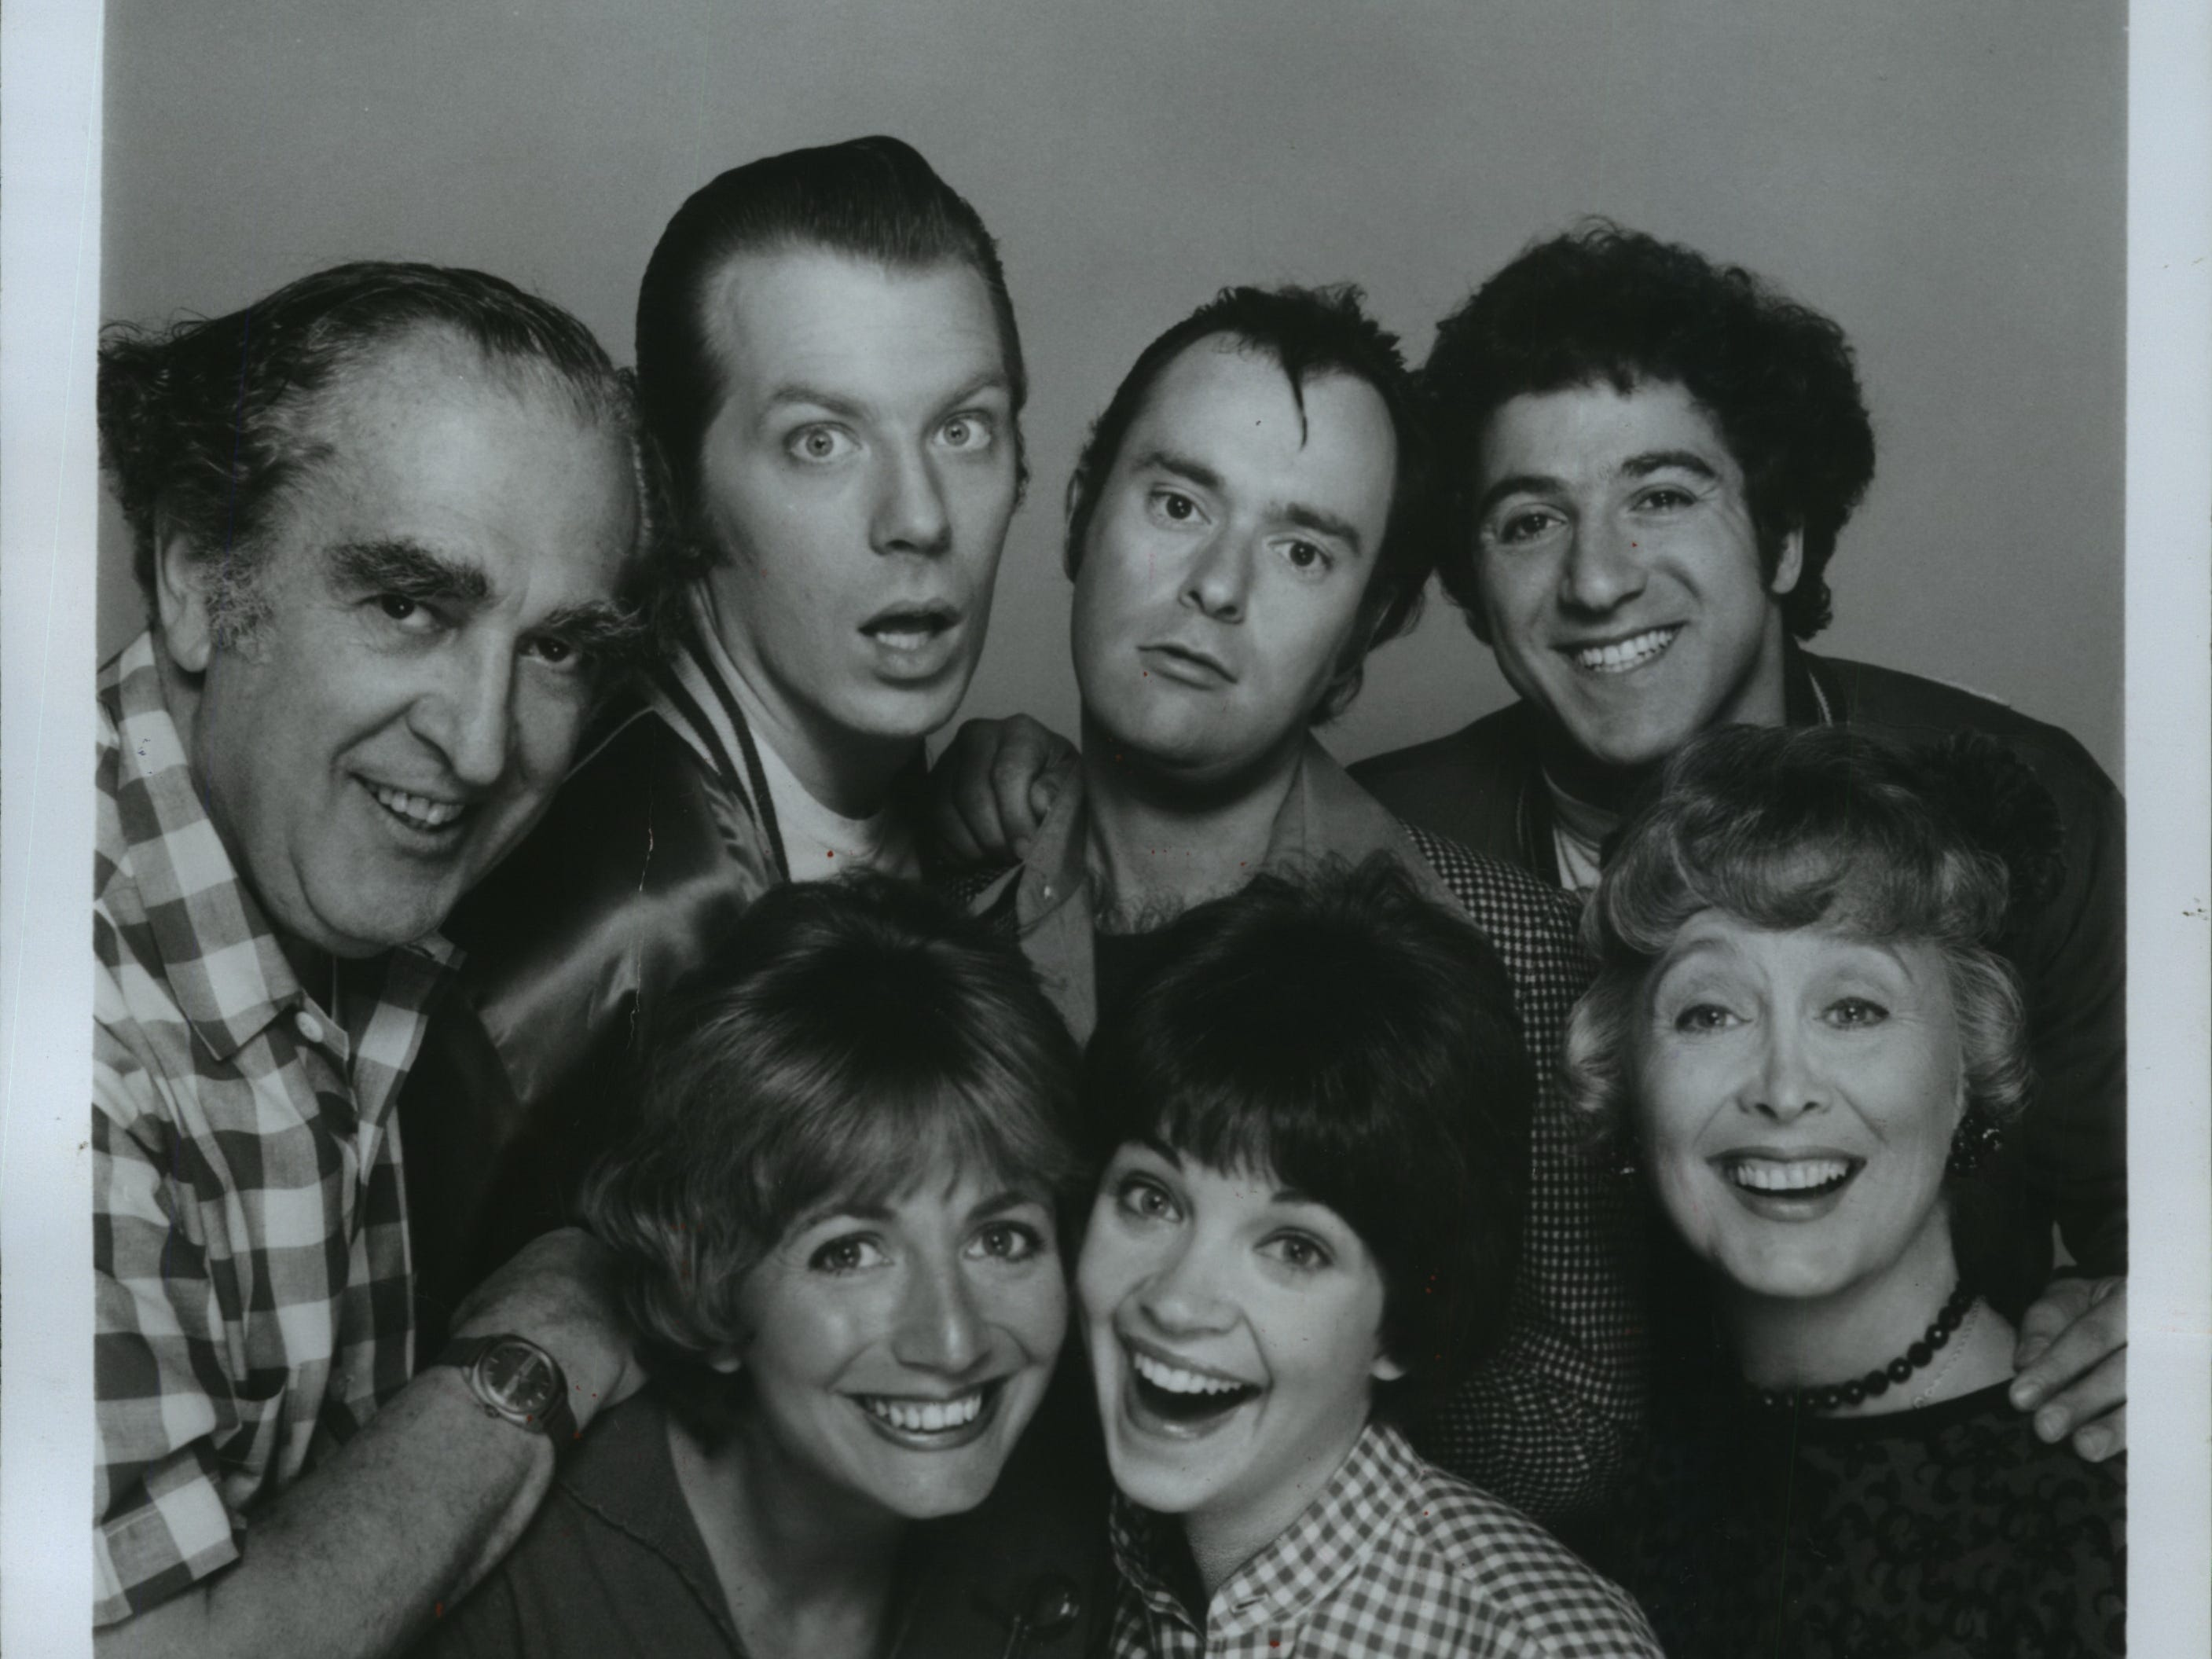 """The cast of the ABC Television Network's hit comedy series, """"Laverne & Shirley"""" was headed by Penny Marshall (left center) and Cindy Williams (center right). The story of two young women working in a Milwaukee beer factory in the late 1950s also starred (from left) Phil Foster as Laverne's dad, Frank De Fazio; Michael McKean and David L. Lander as the girl's zany friends Lenny and Squiggy; Eddie Mekka as Carmine Ragusa, and Betty Garrett as their landlady."""